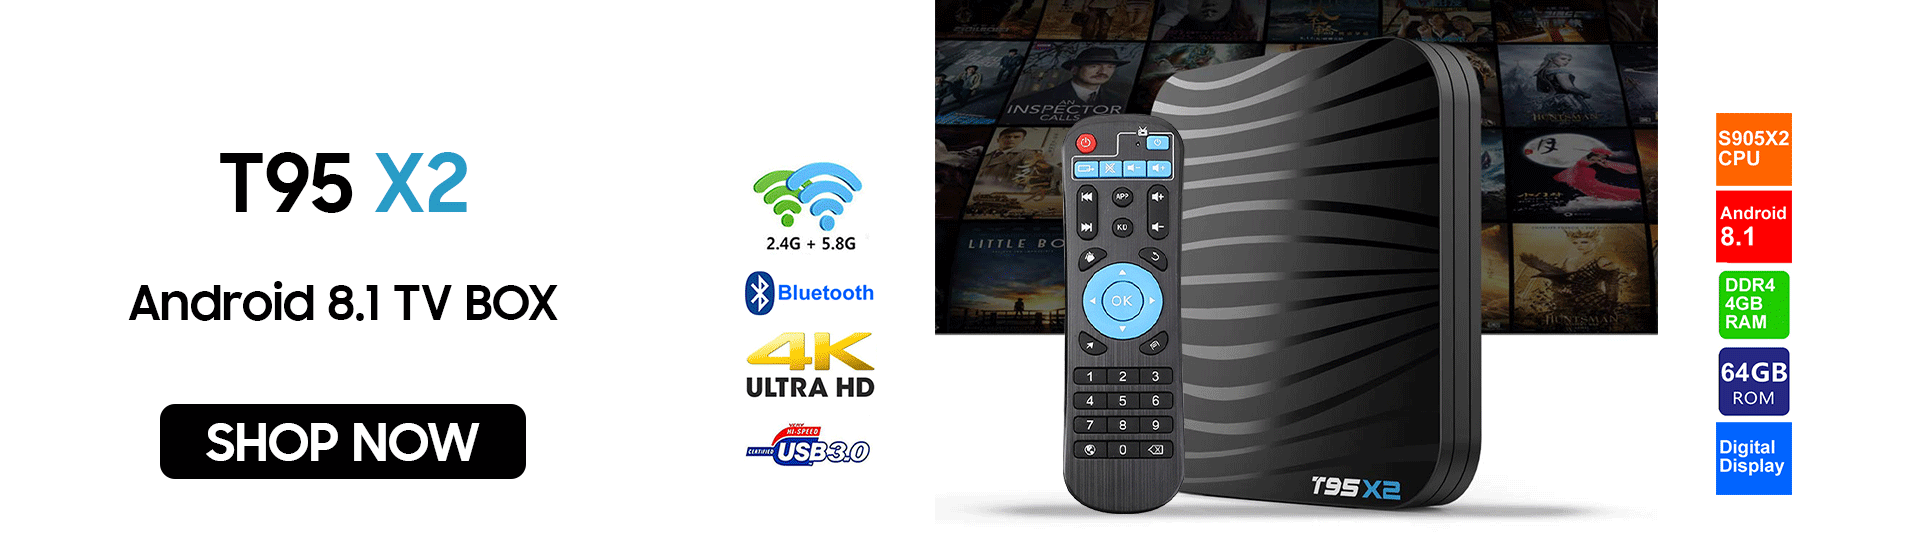 T95X2 Android 8.1 TV BOX